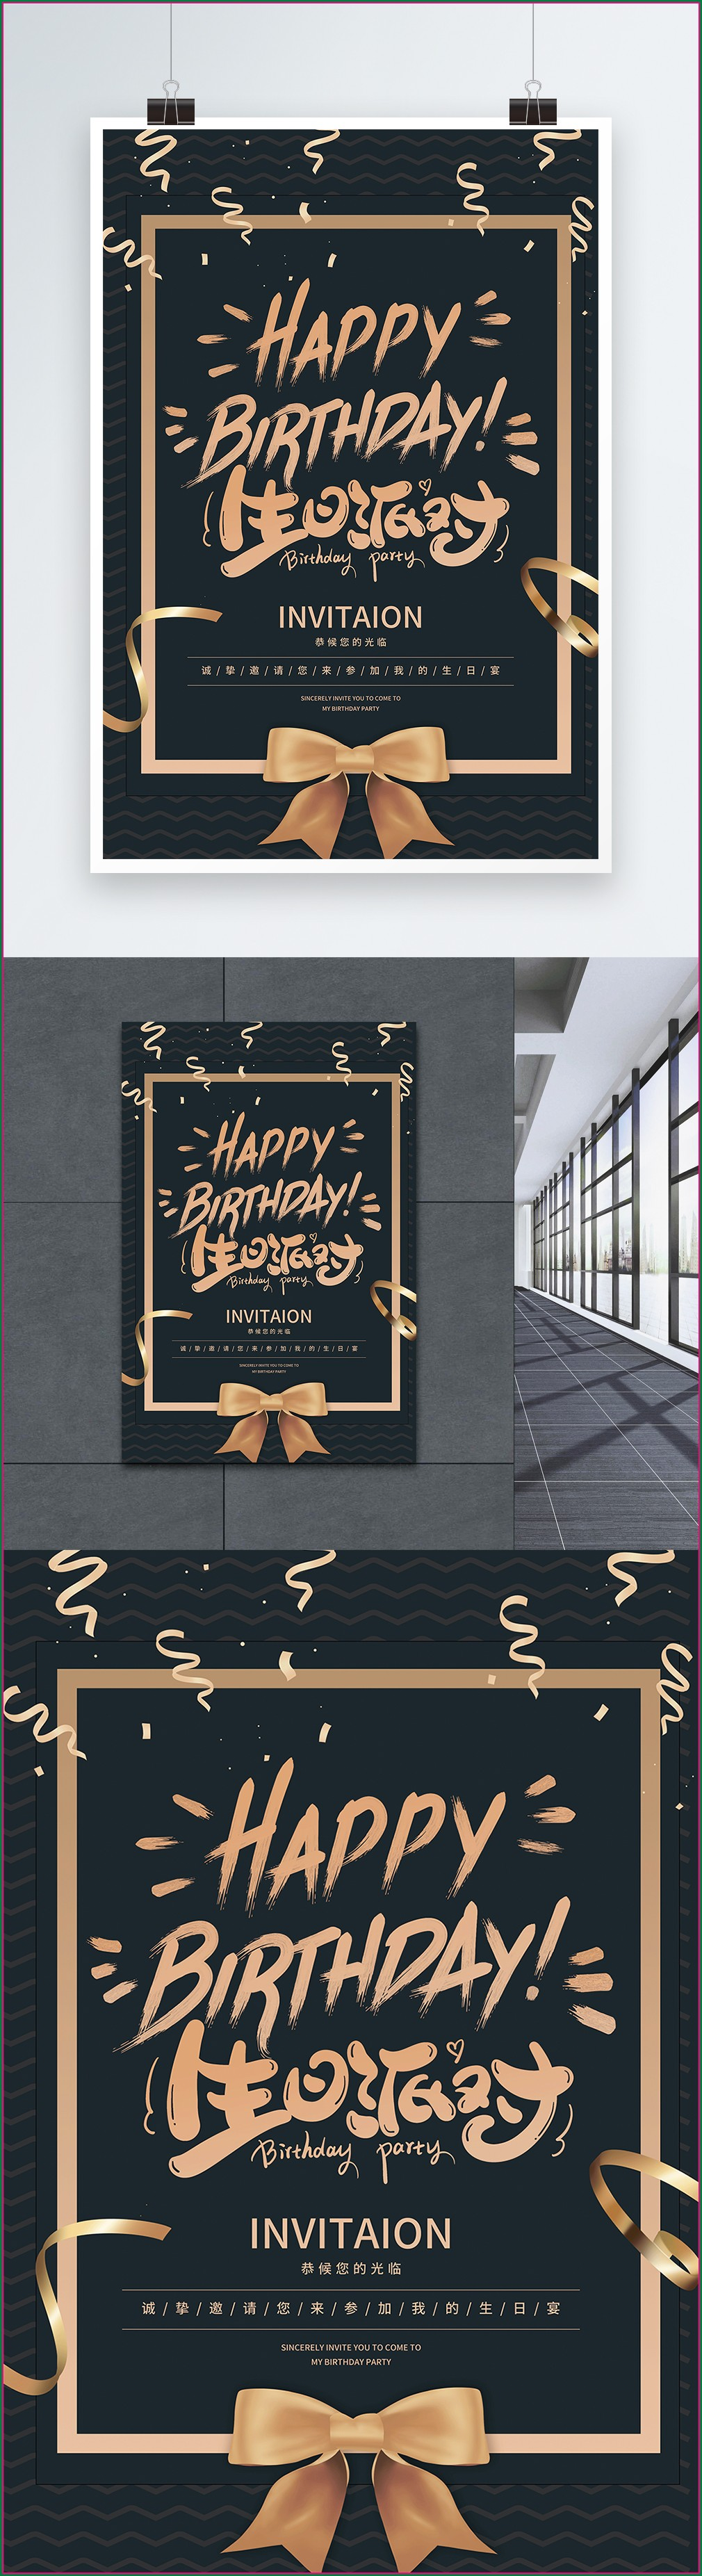 Birthday Invitation Background Images Hd